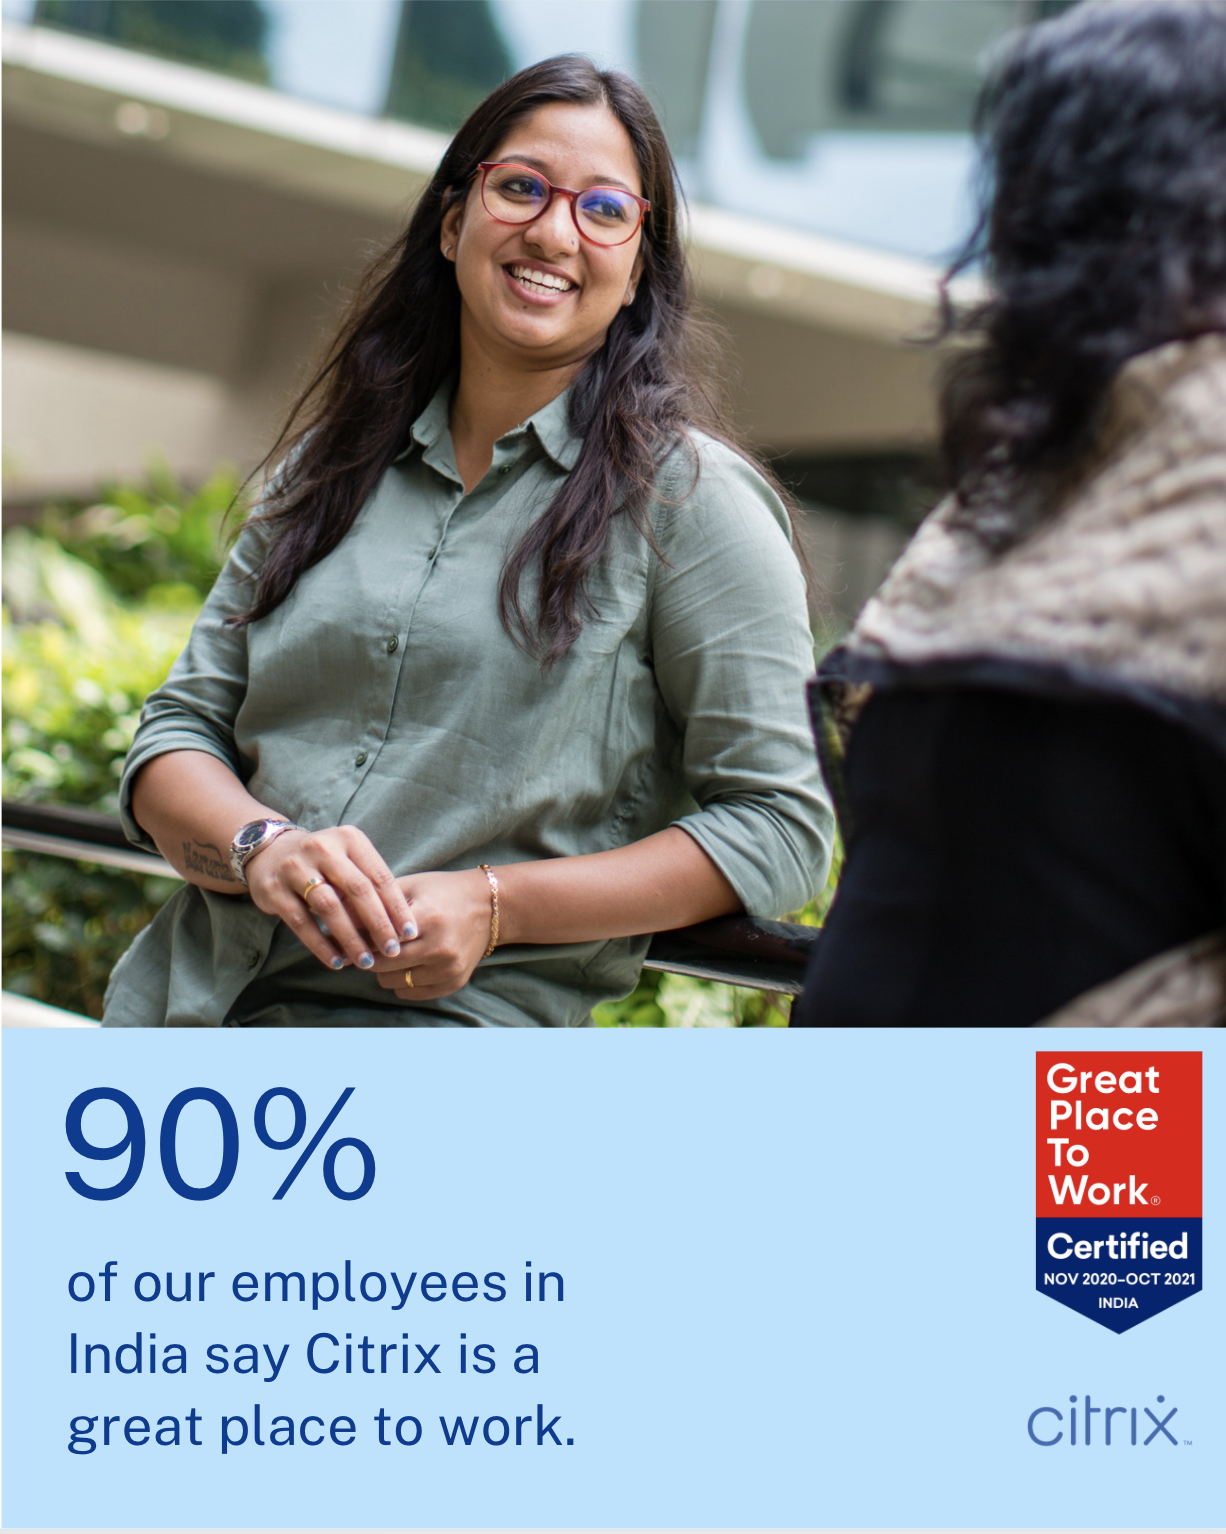 90% of our employees in India say Citrix is a great place to work